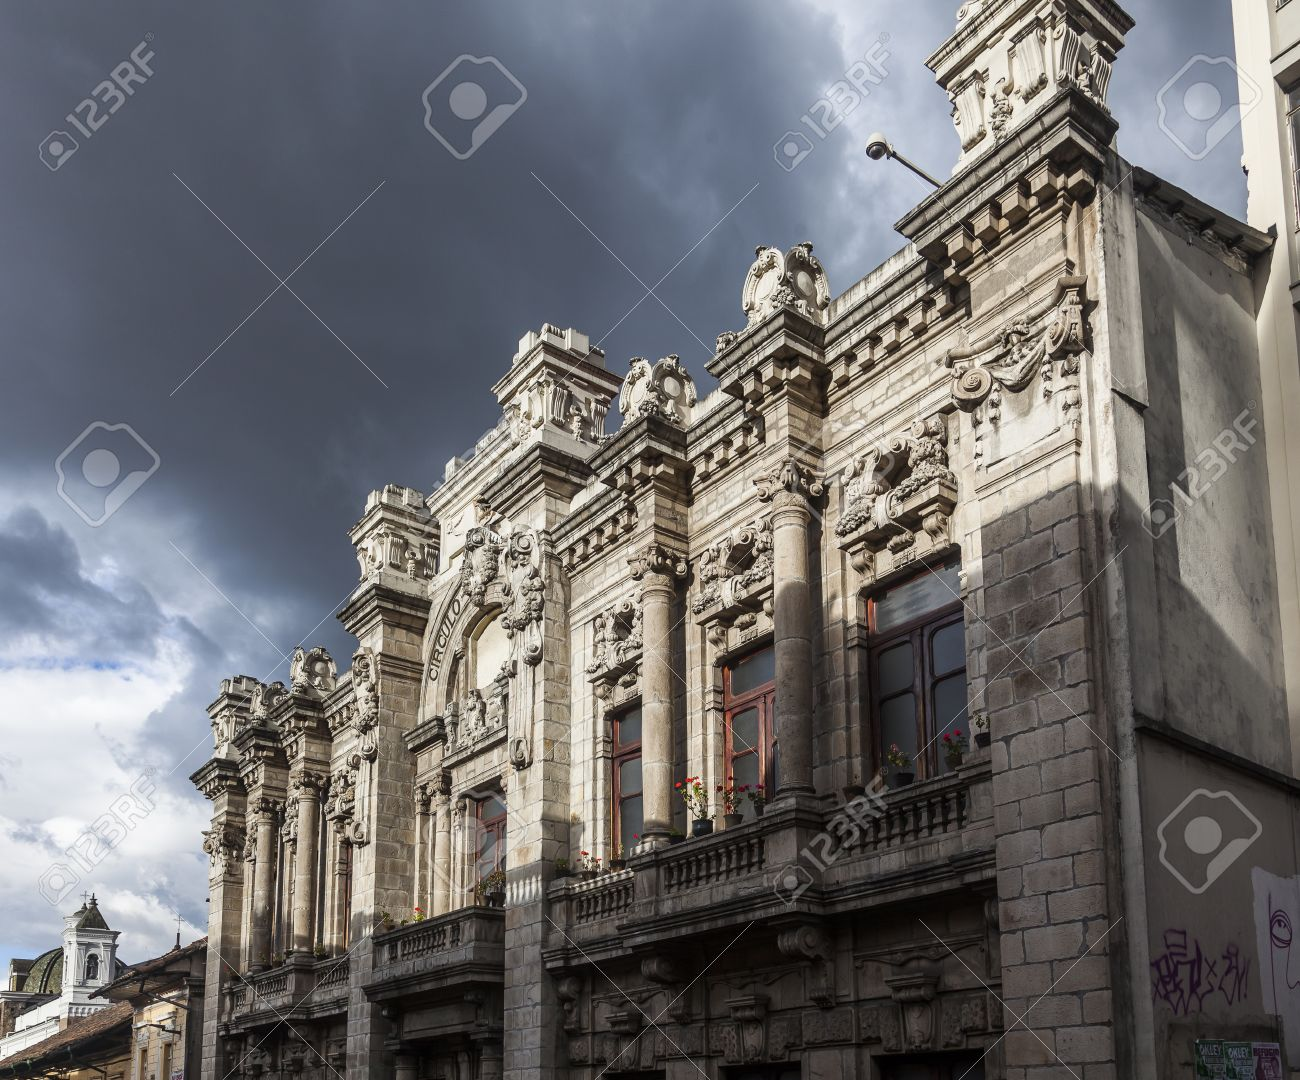 Quito Old Town Colonial Architecture Old Building Military